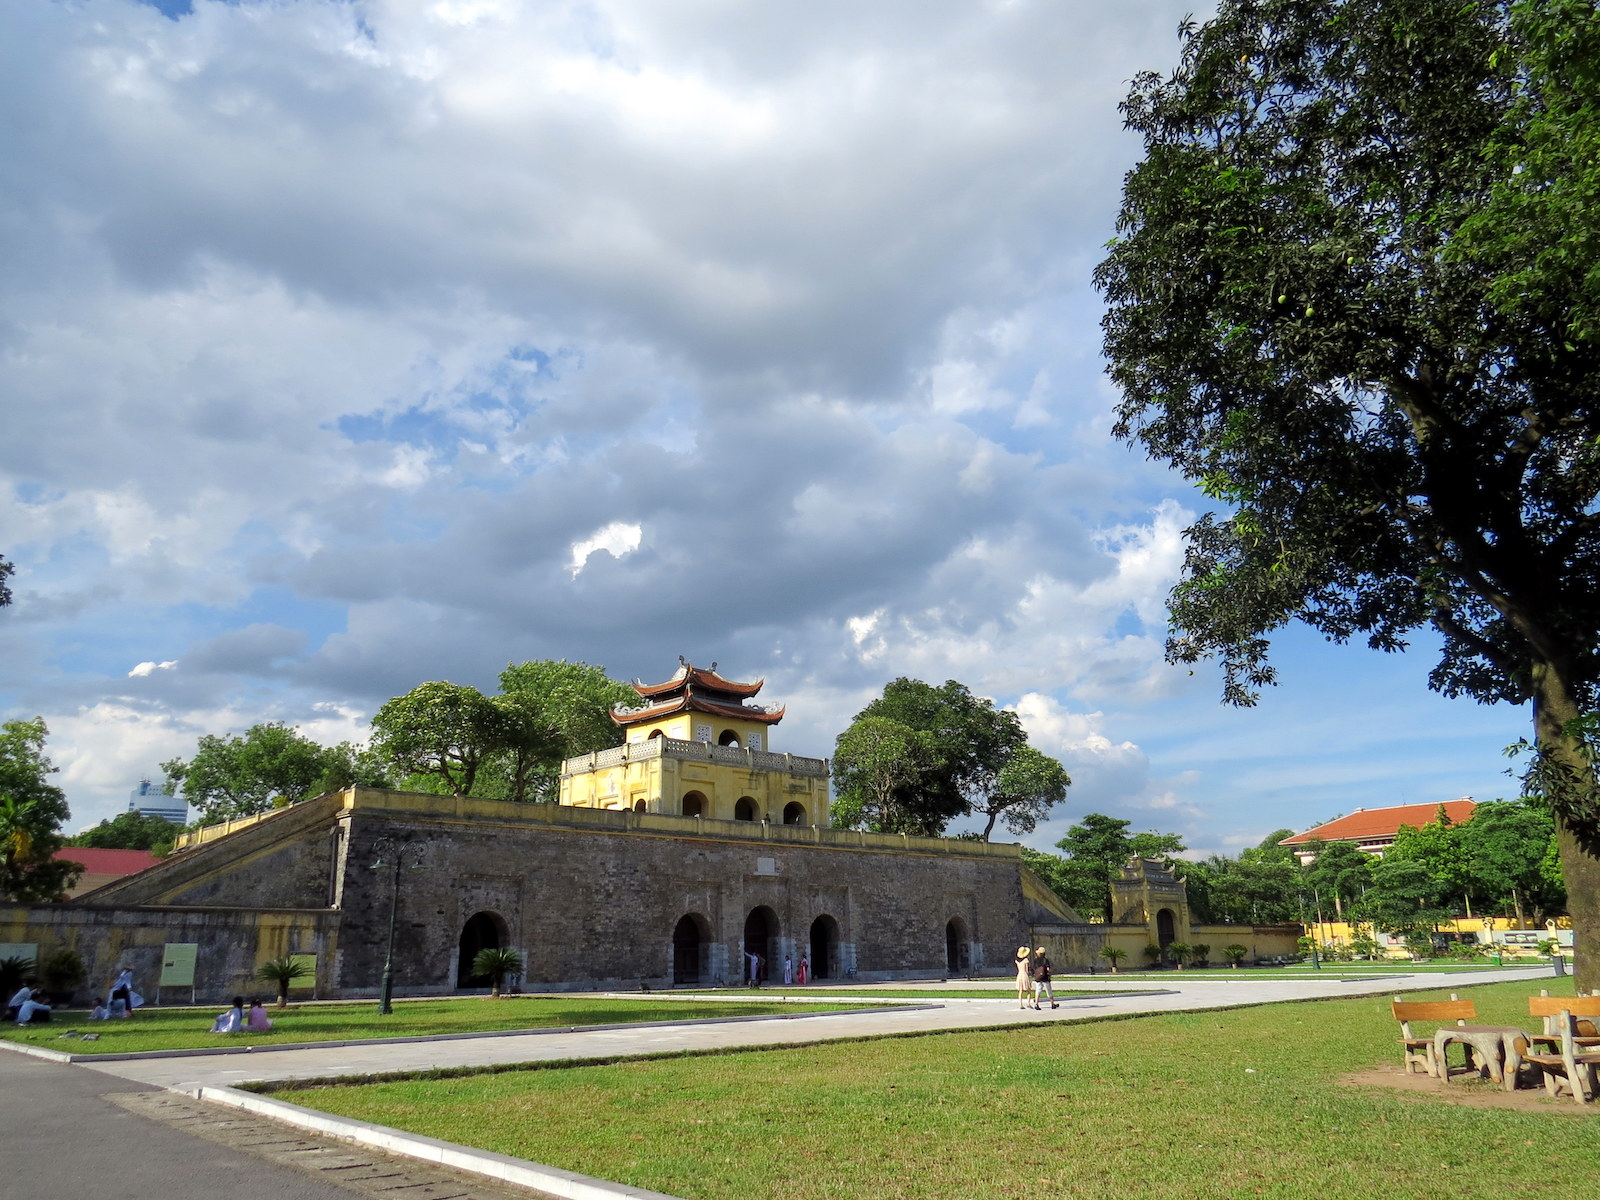 Imperial Citadel of Thang Long in Ha Nội, VN